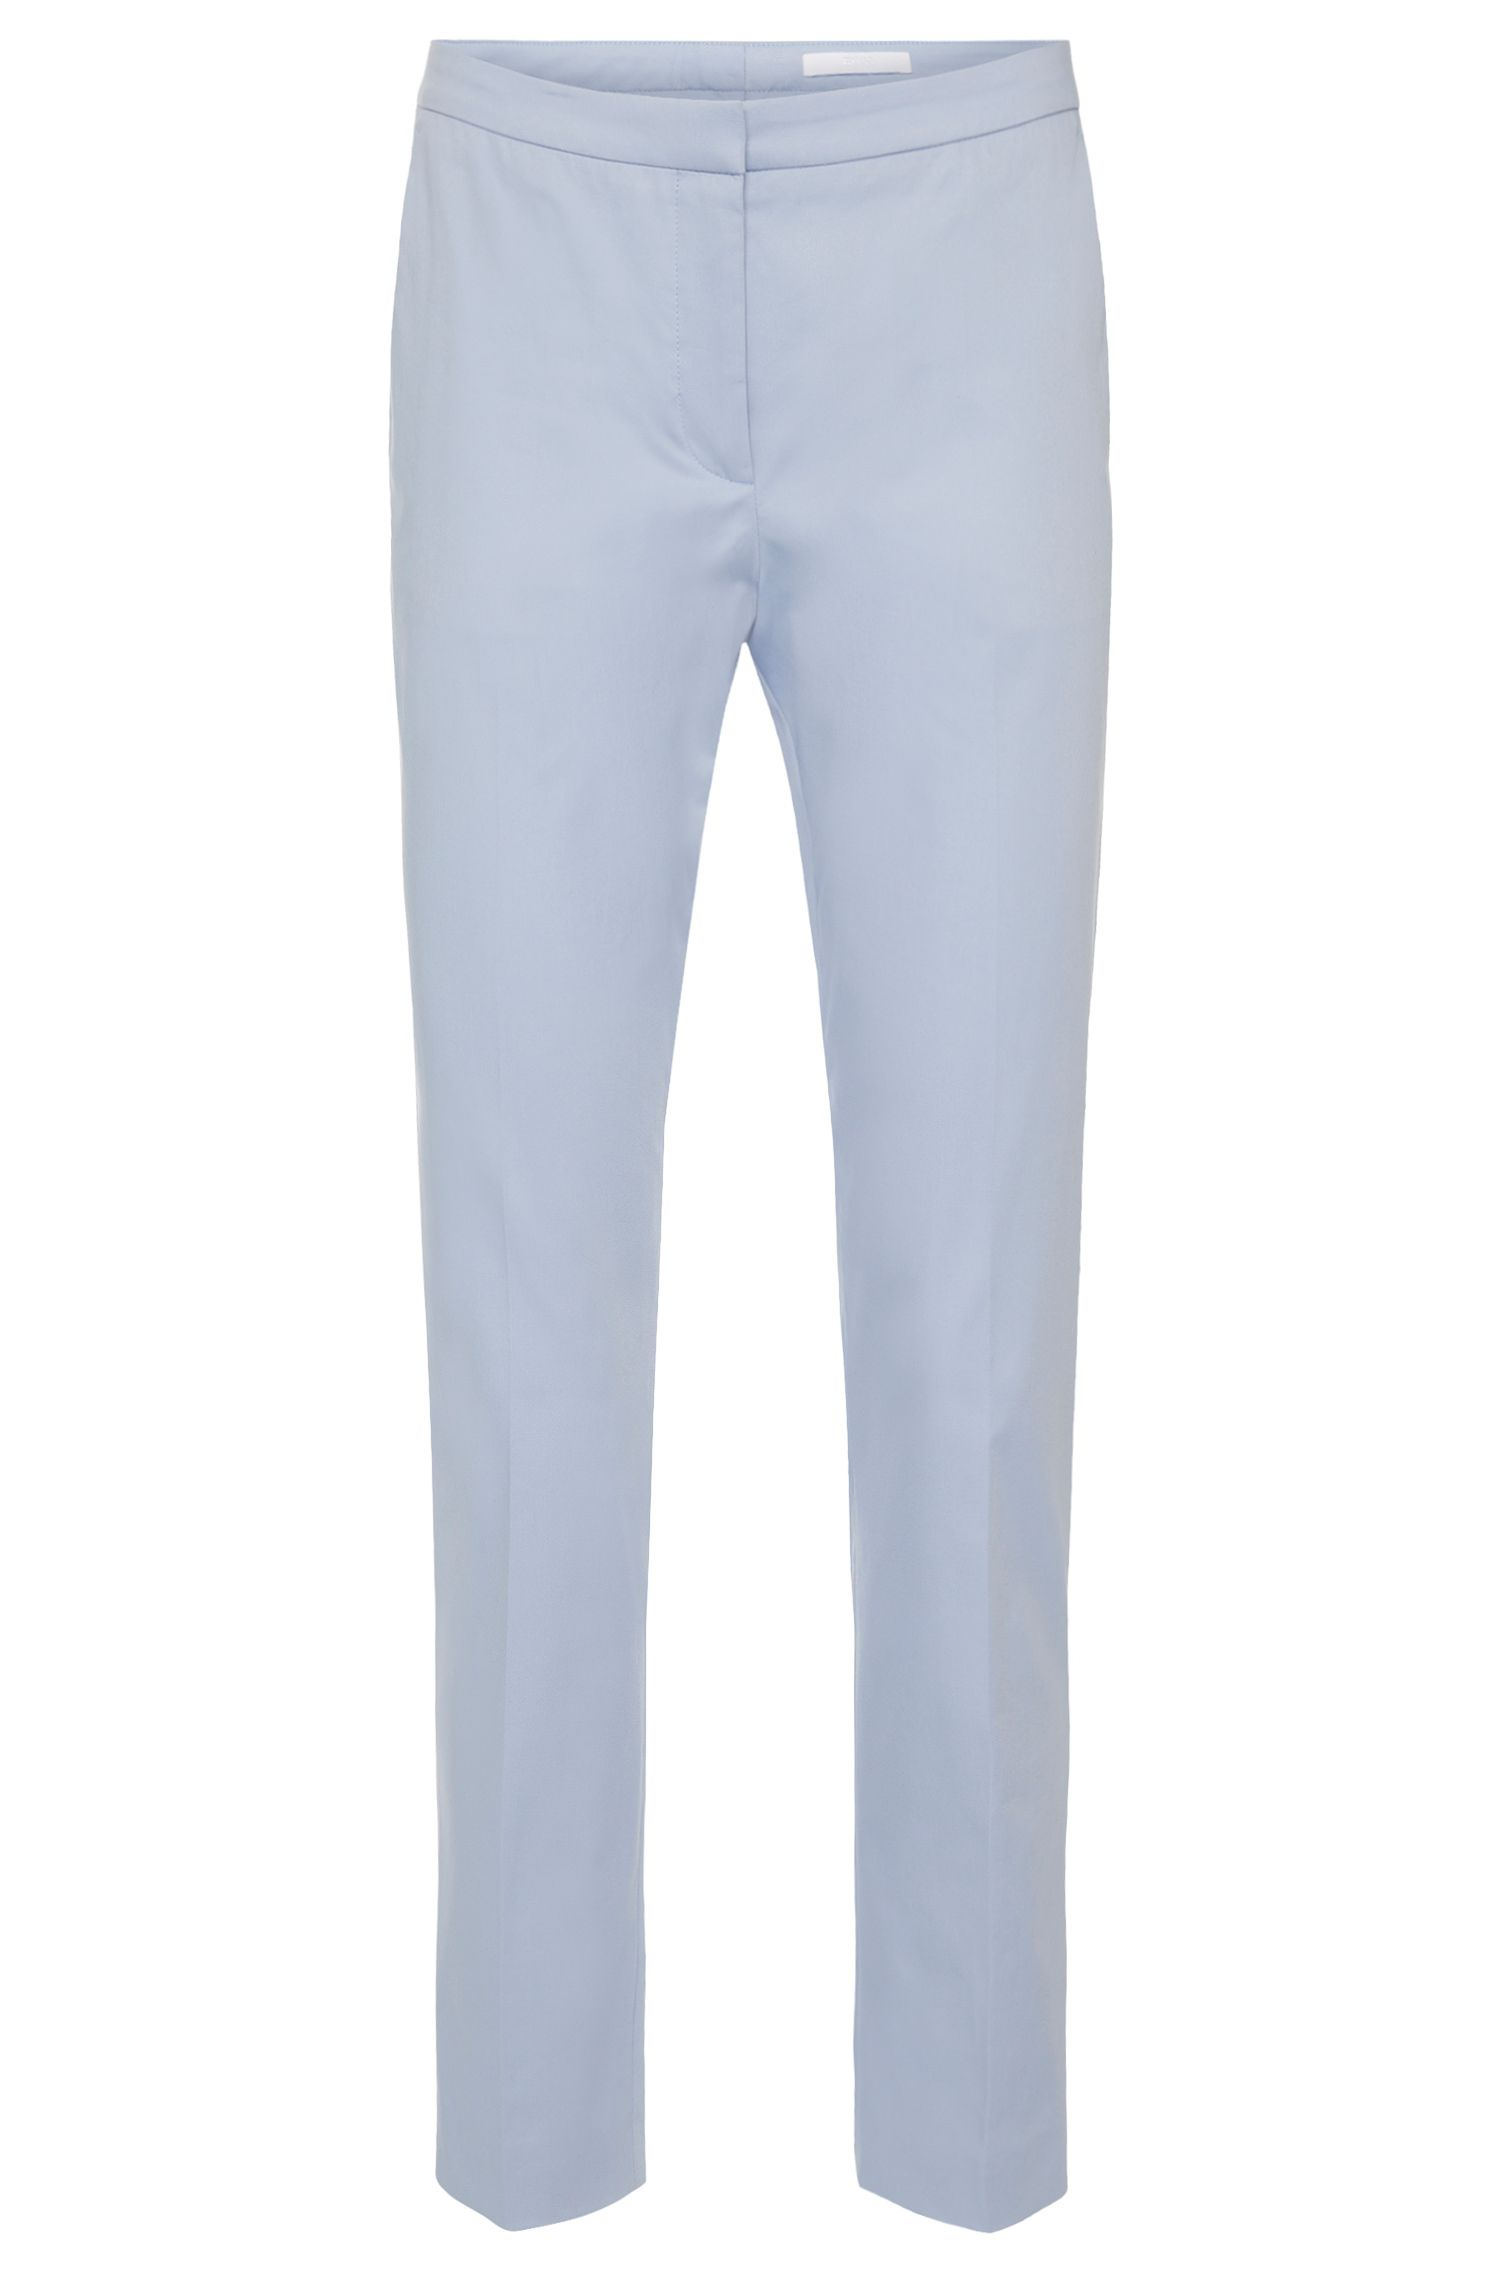 'Tobaluka7' | Relaxed Fit, Stretch Cotton Dress Pant